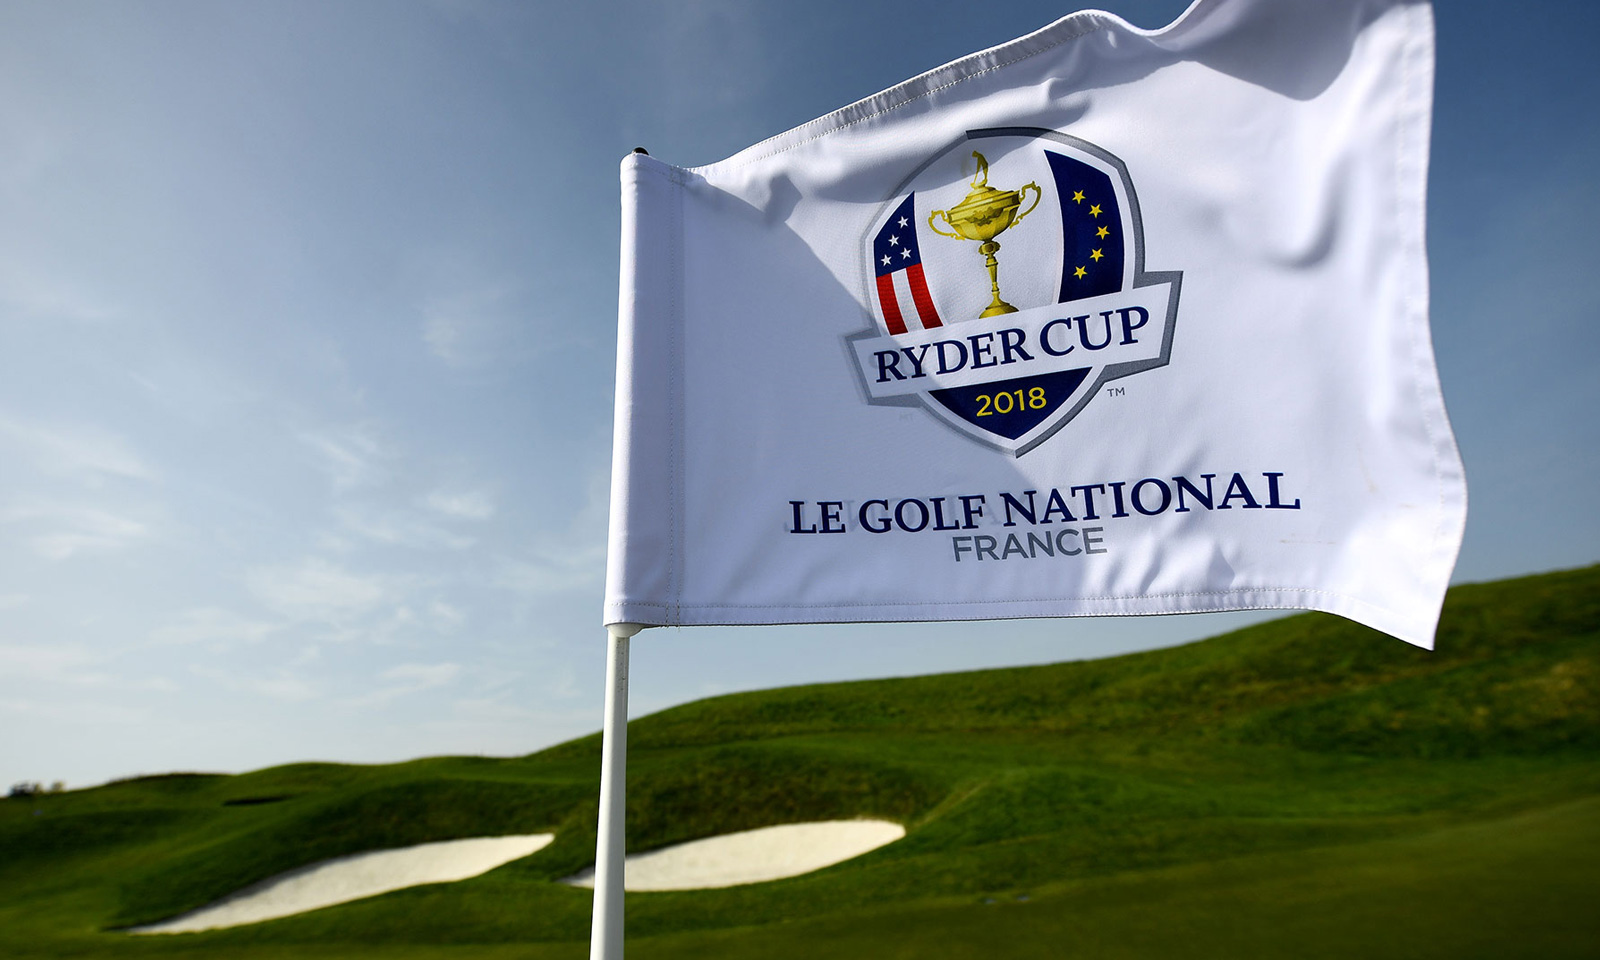 Ryder-Cup-4-Great-Places-To-Golf-Around-Paris